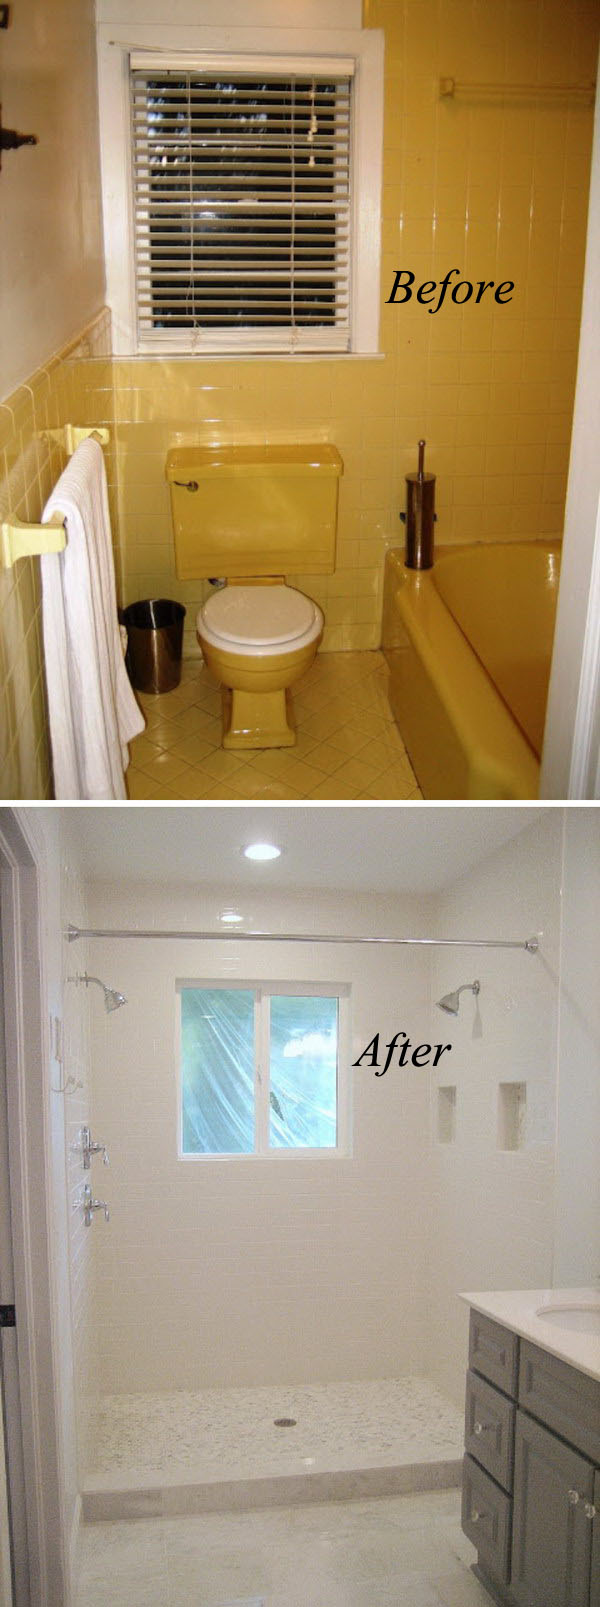 33 Inspirational Small Bathroom Remodel Before and After ... on Small Bathroom Renovations  id=64677